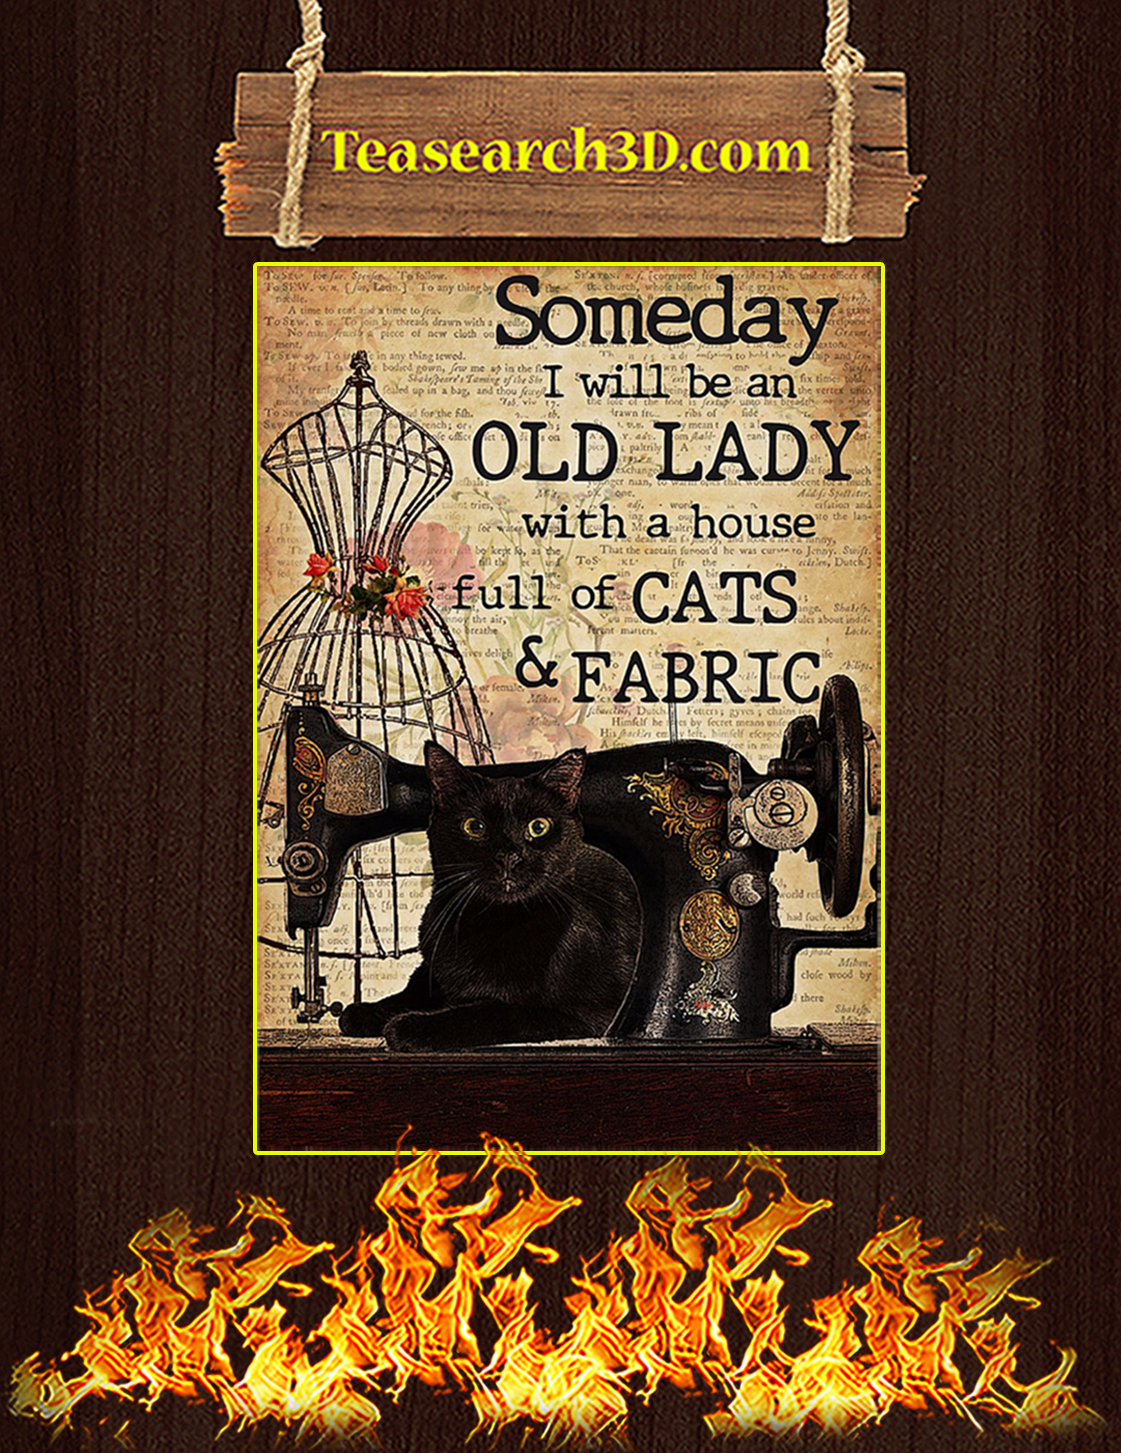 Sewing Someday I will be an old lady with a house full of cats and fabric poster A3